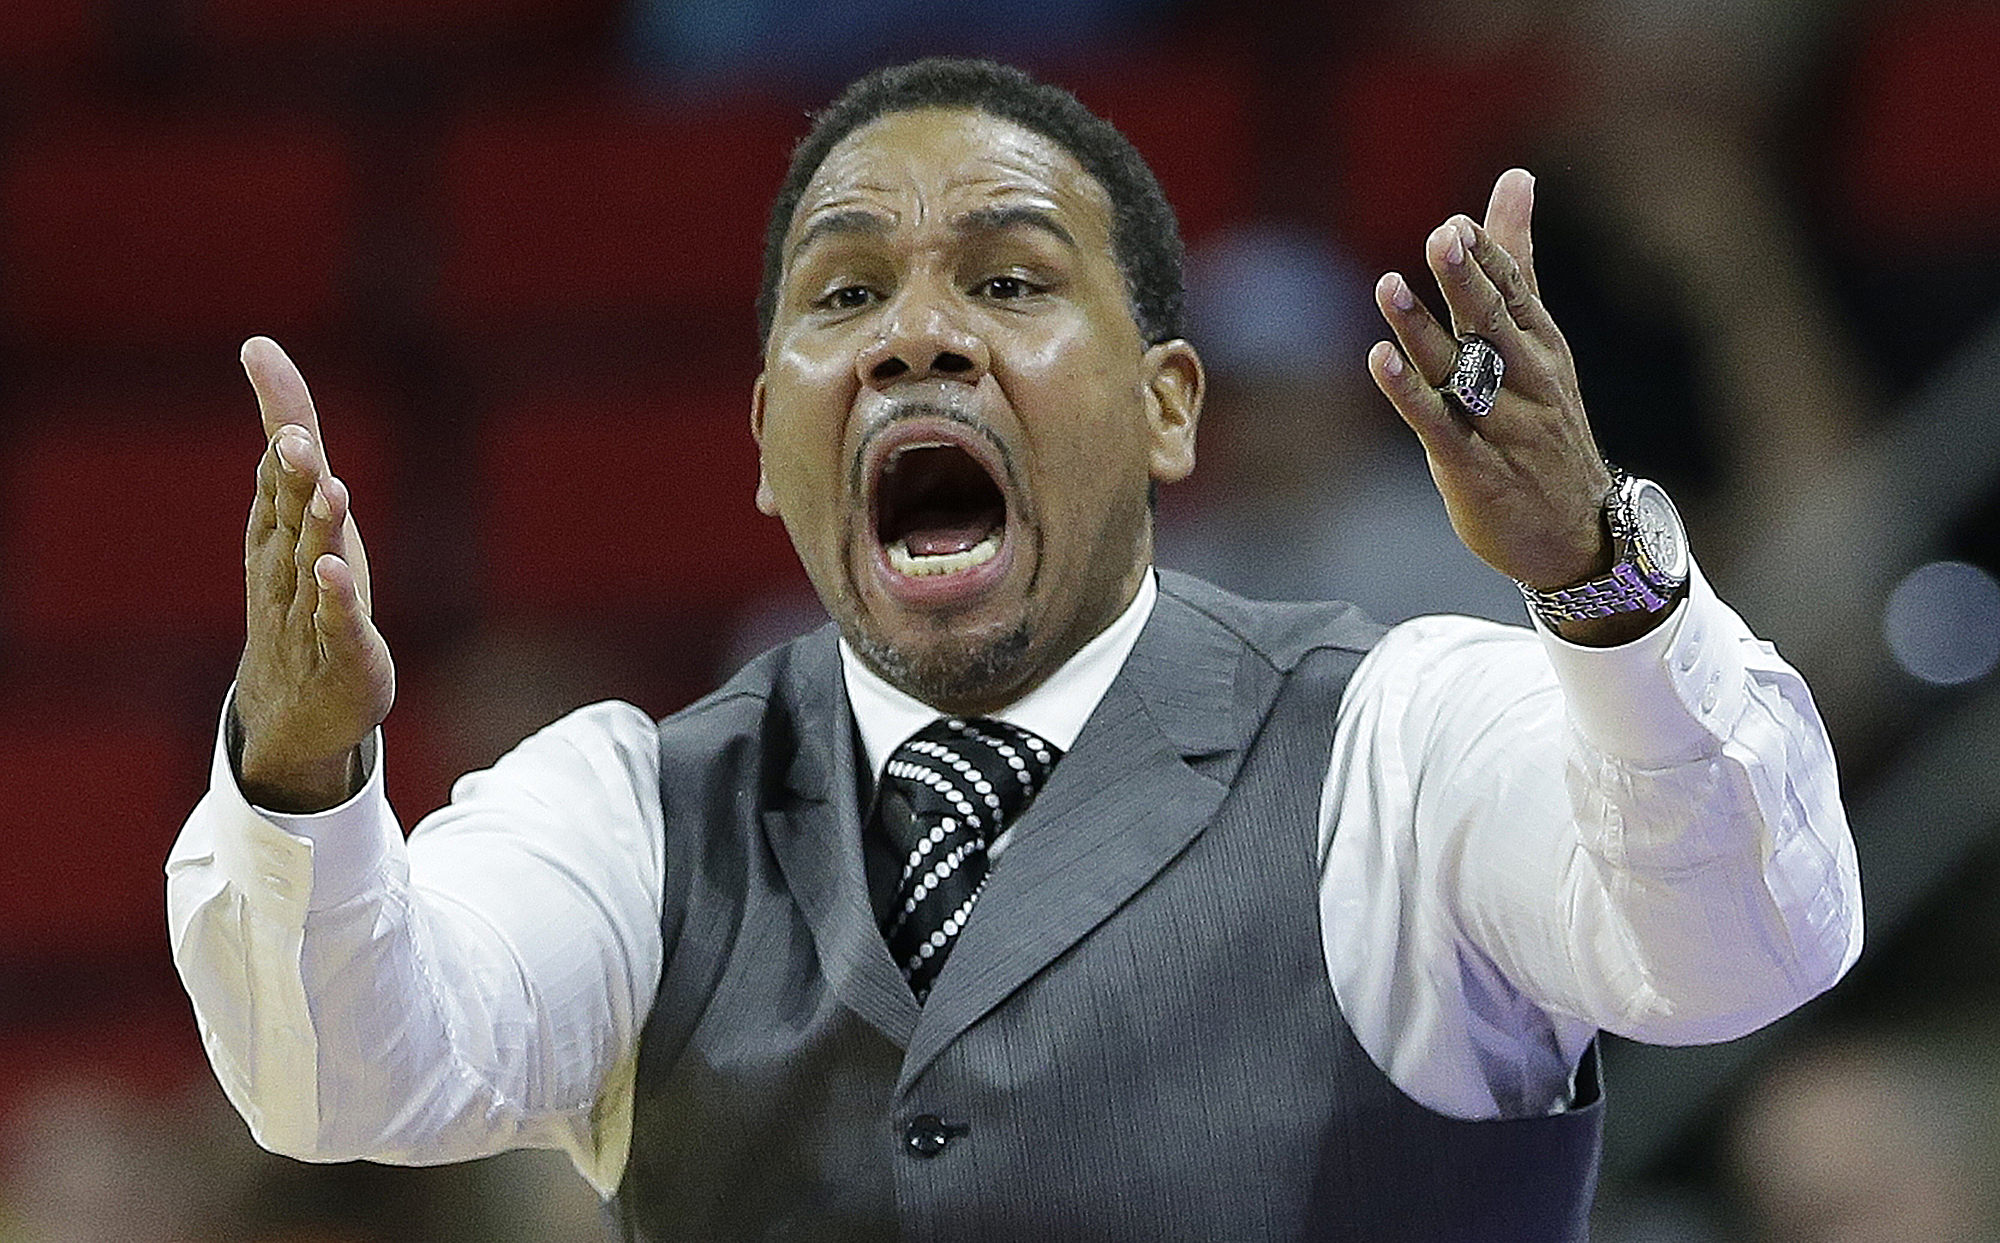 Providence head coach Ed Cooley speaks to his player during the second half of a first-round men's college basketball game in the NCAA Tournament against Southern California, Thursday, March 17, 2016, in Raleigh, N.C.  (AP Photo/Gerry Broome)